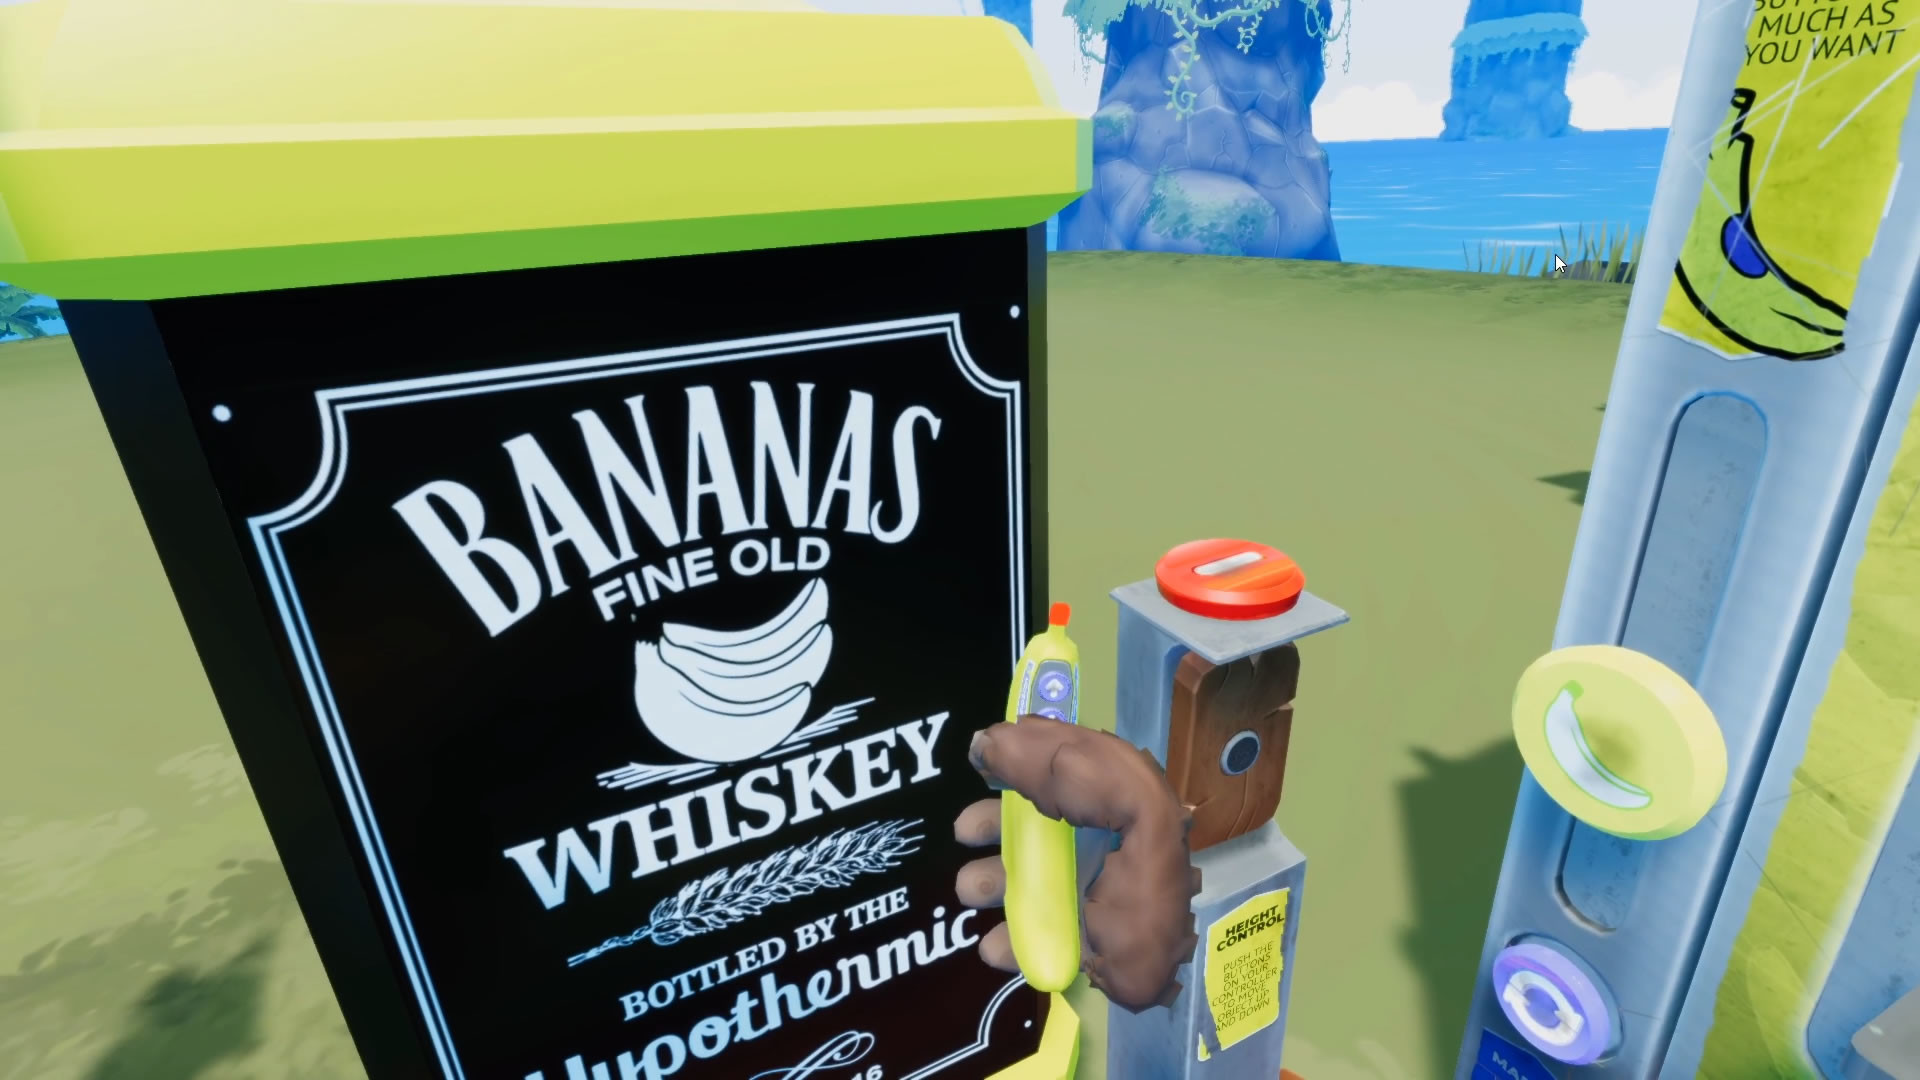 Banana For Scale review: a meme turned VR game - The Ghost Howls